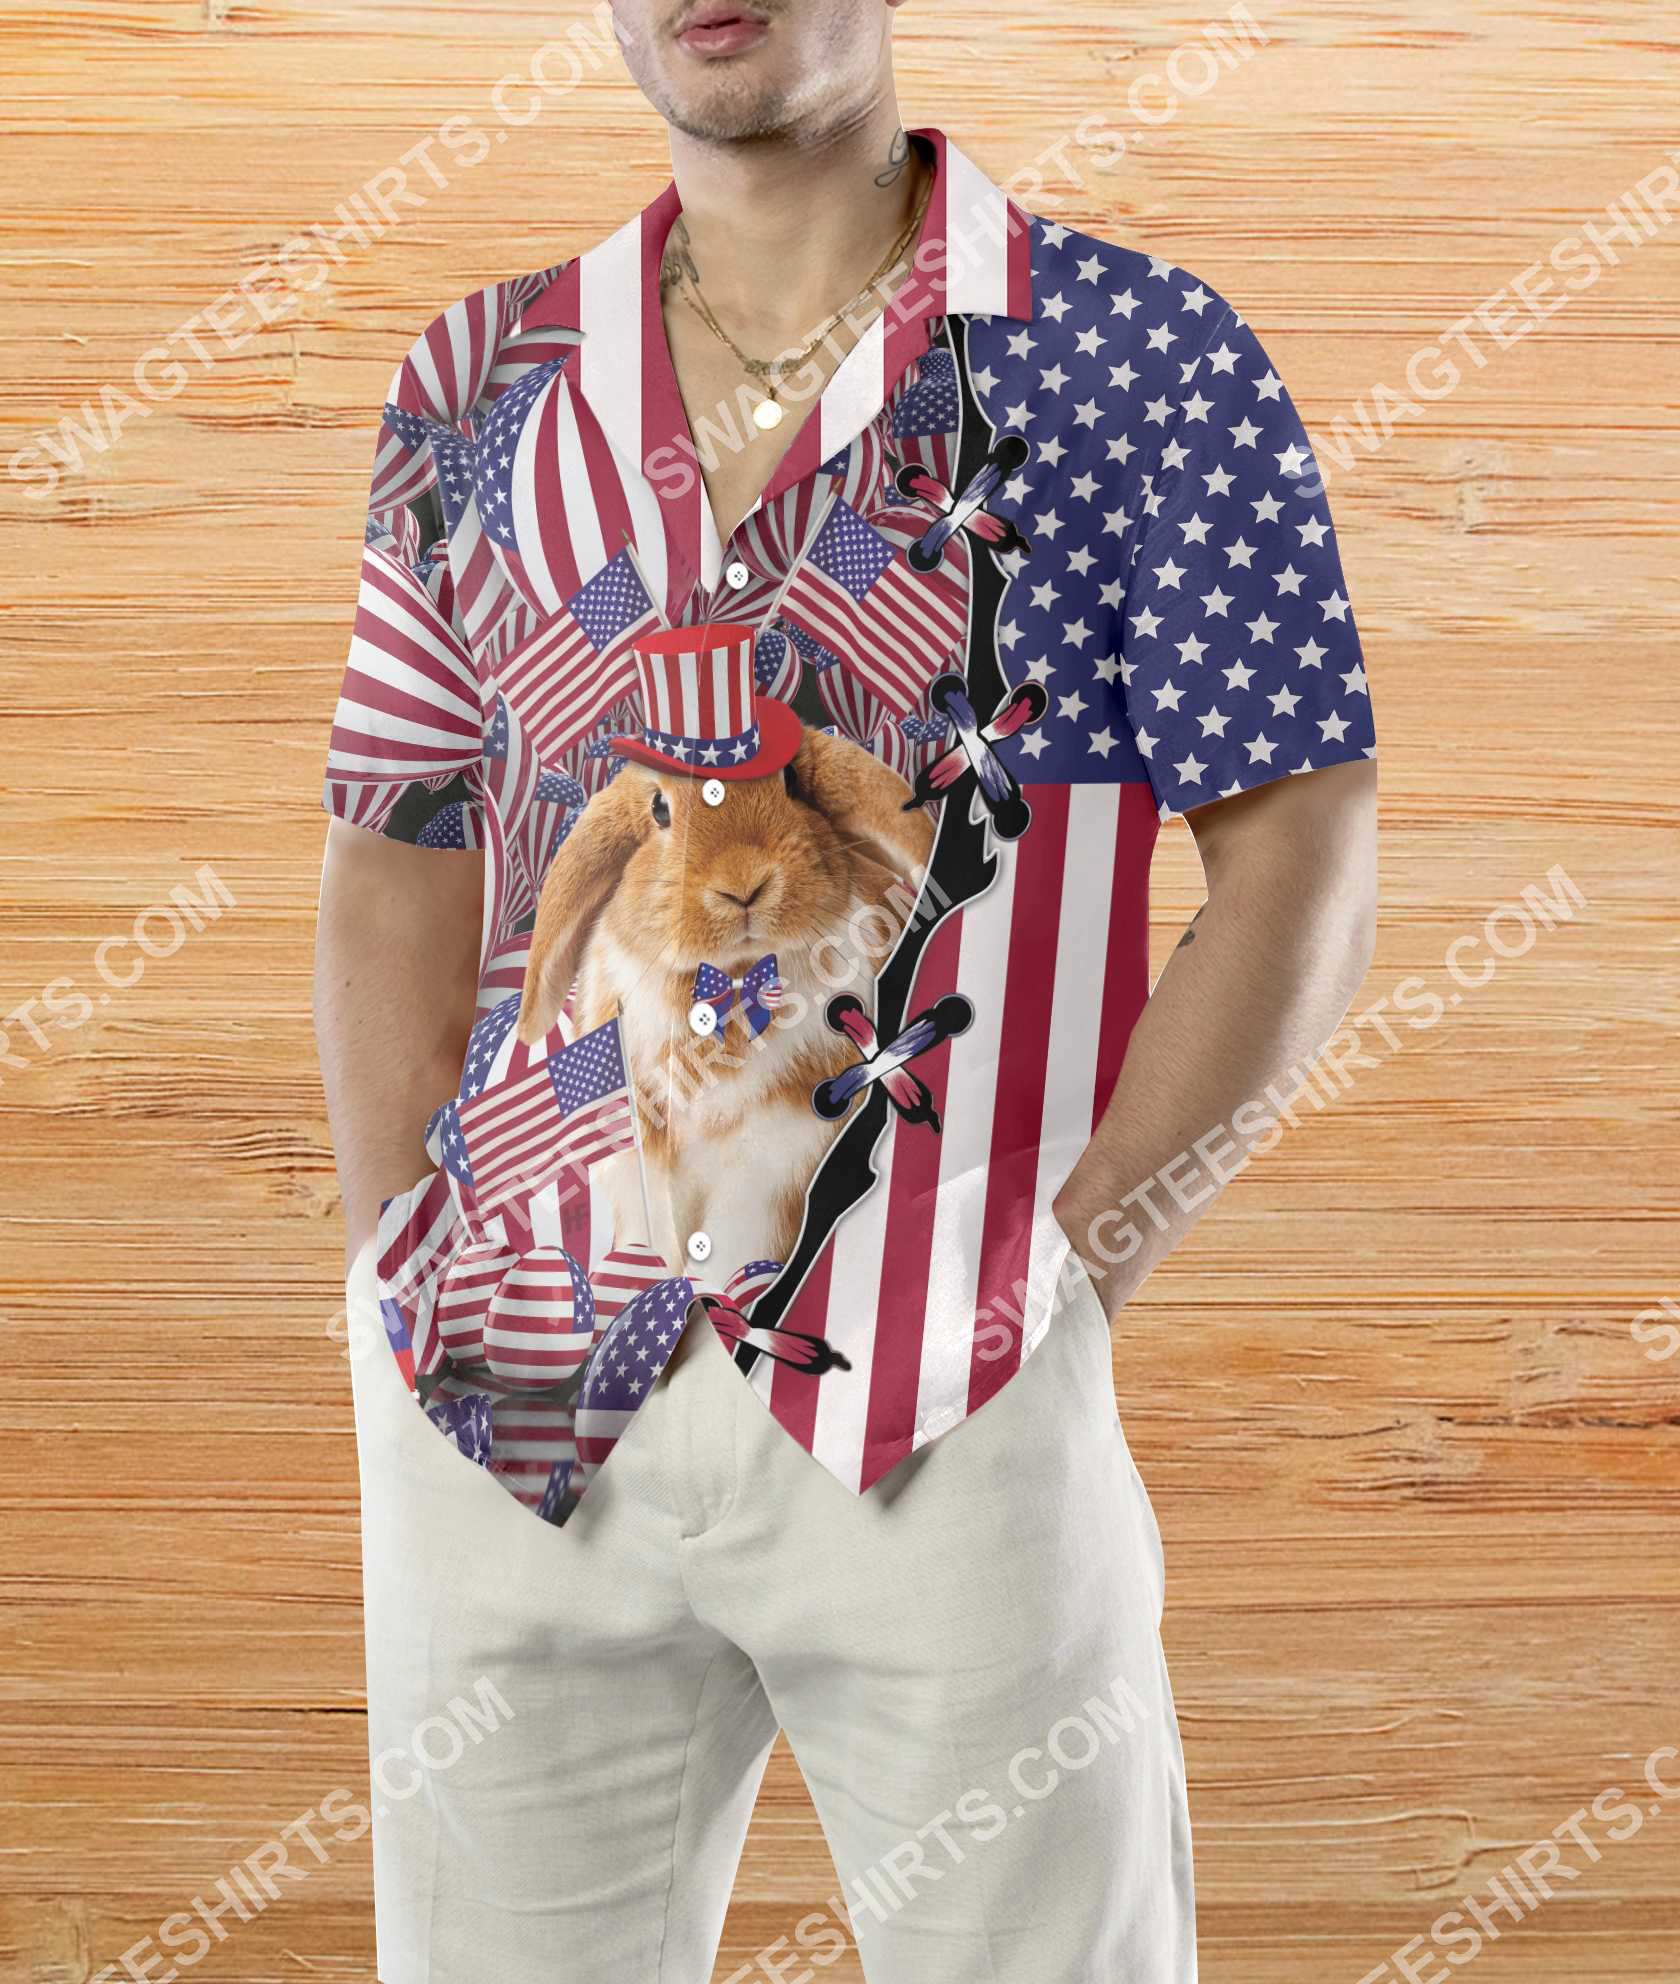 happy easter day america flag all over printed hawaiian shirt 4(1)